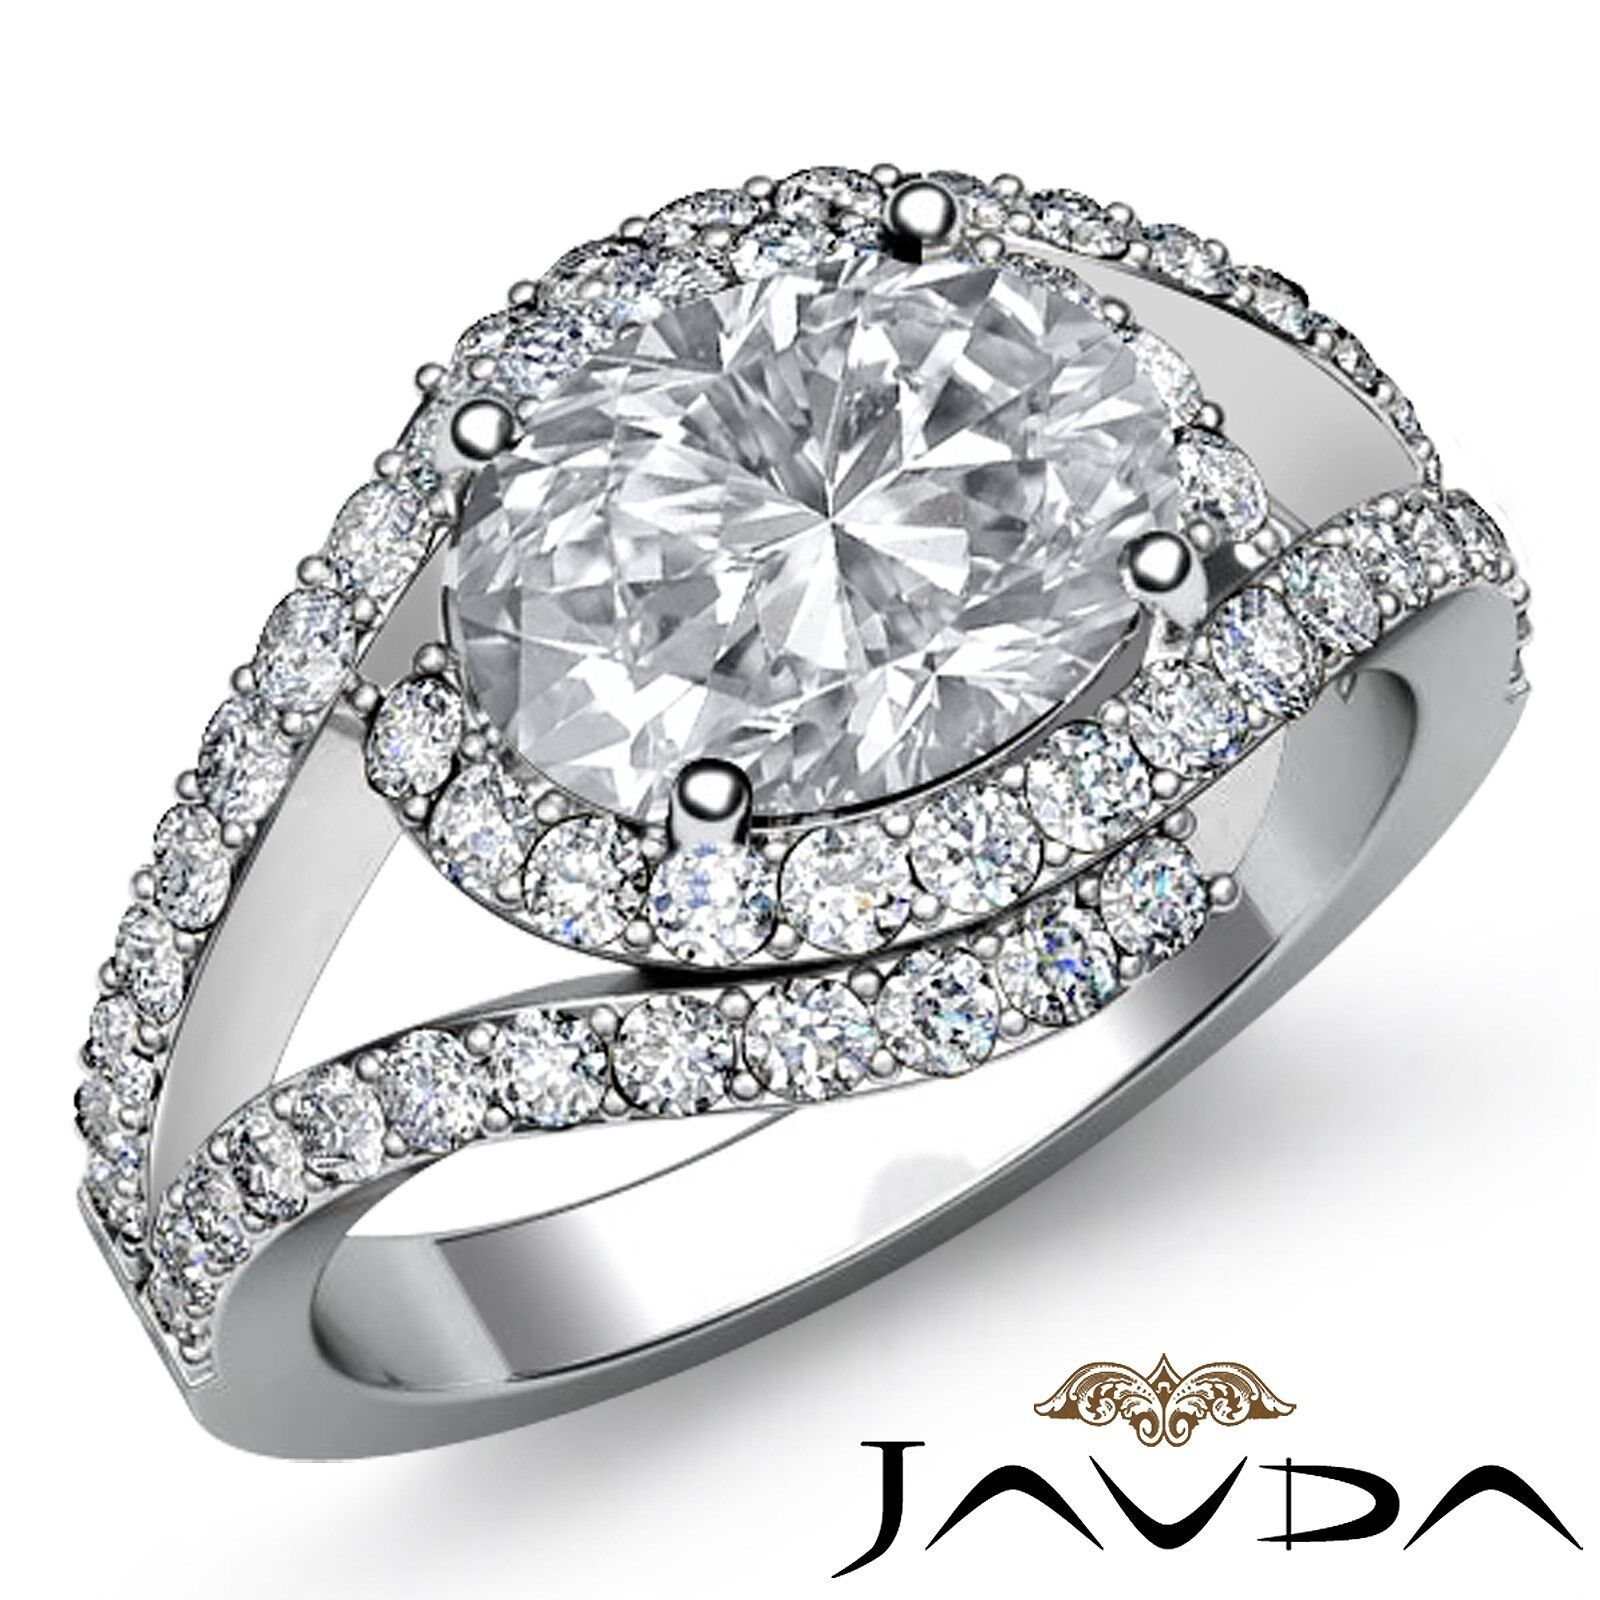 Bypass Design Prong Setting Oval Diamond Engagement Gold Ring GIA I VS2 2.13Ct